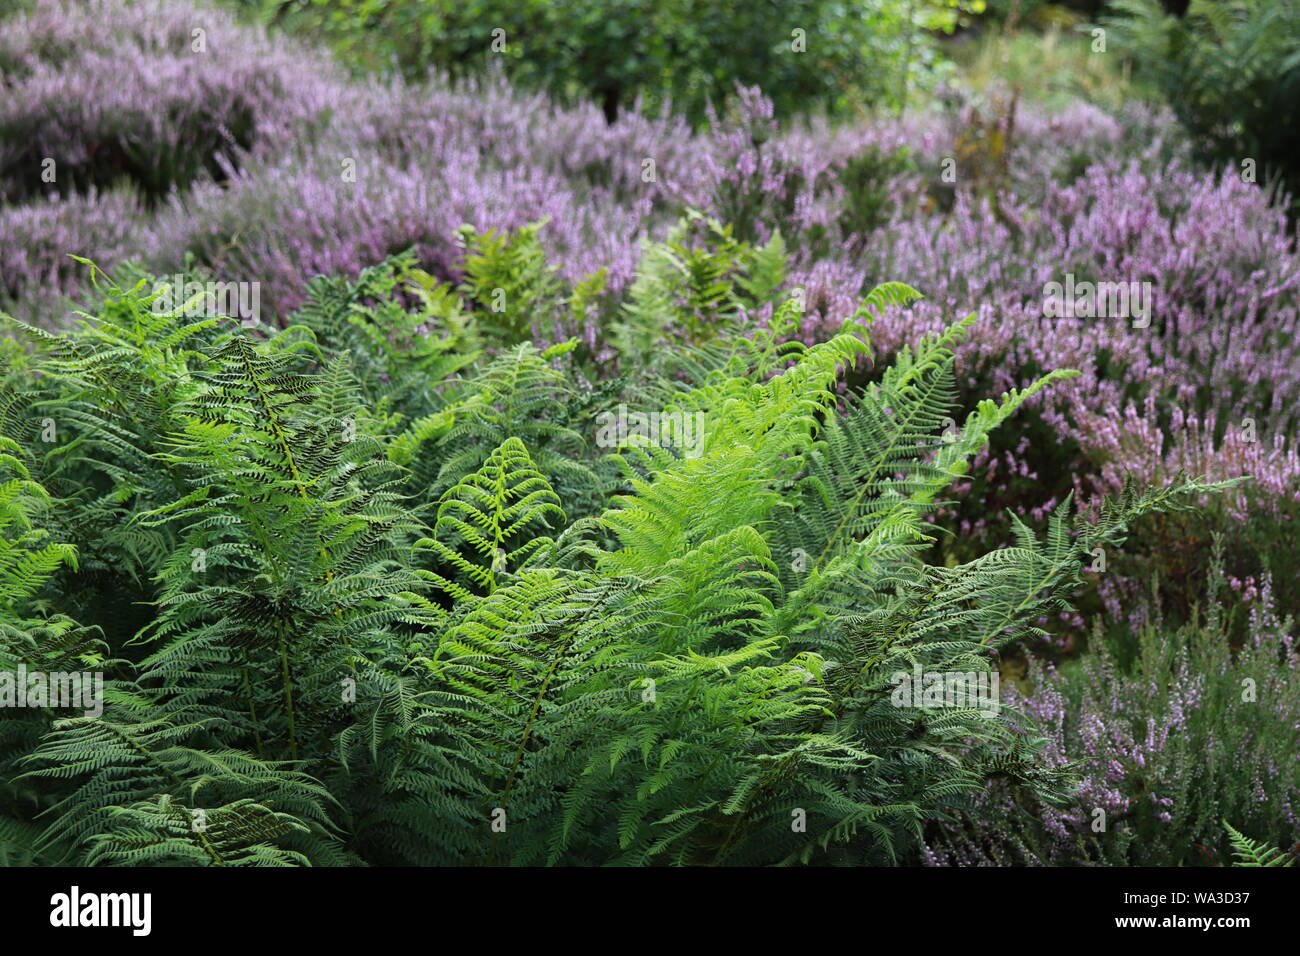 Heather and ferns in close up Stock Photo